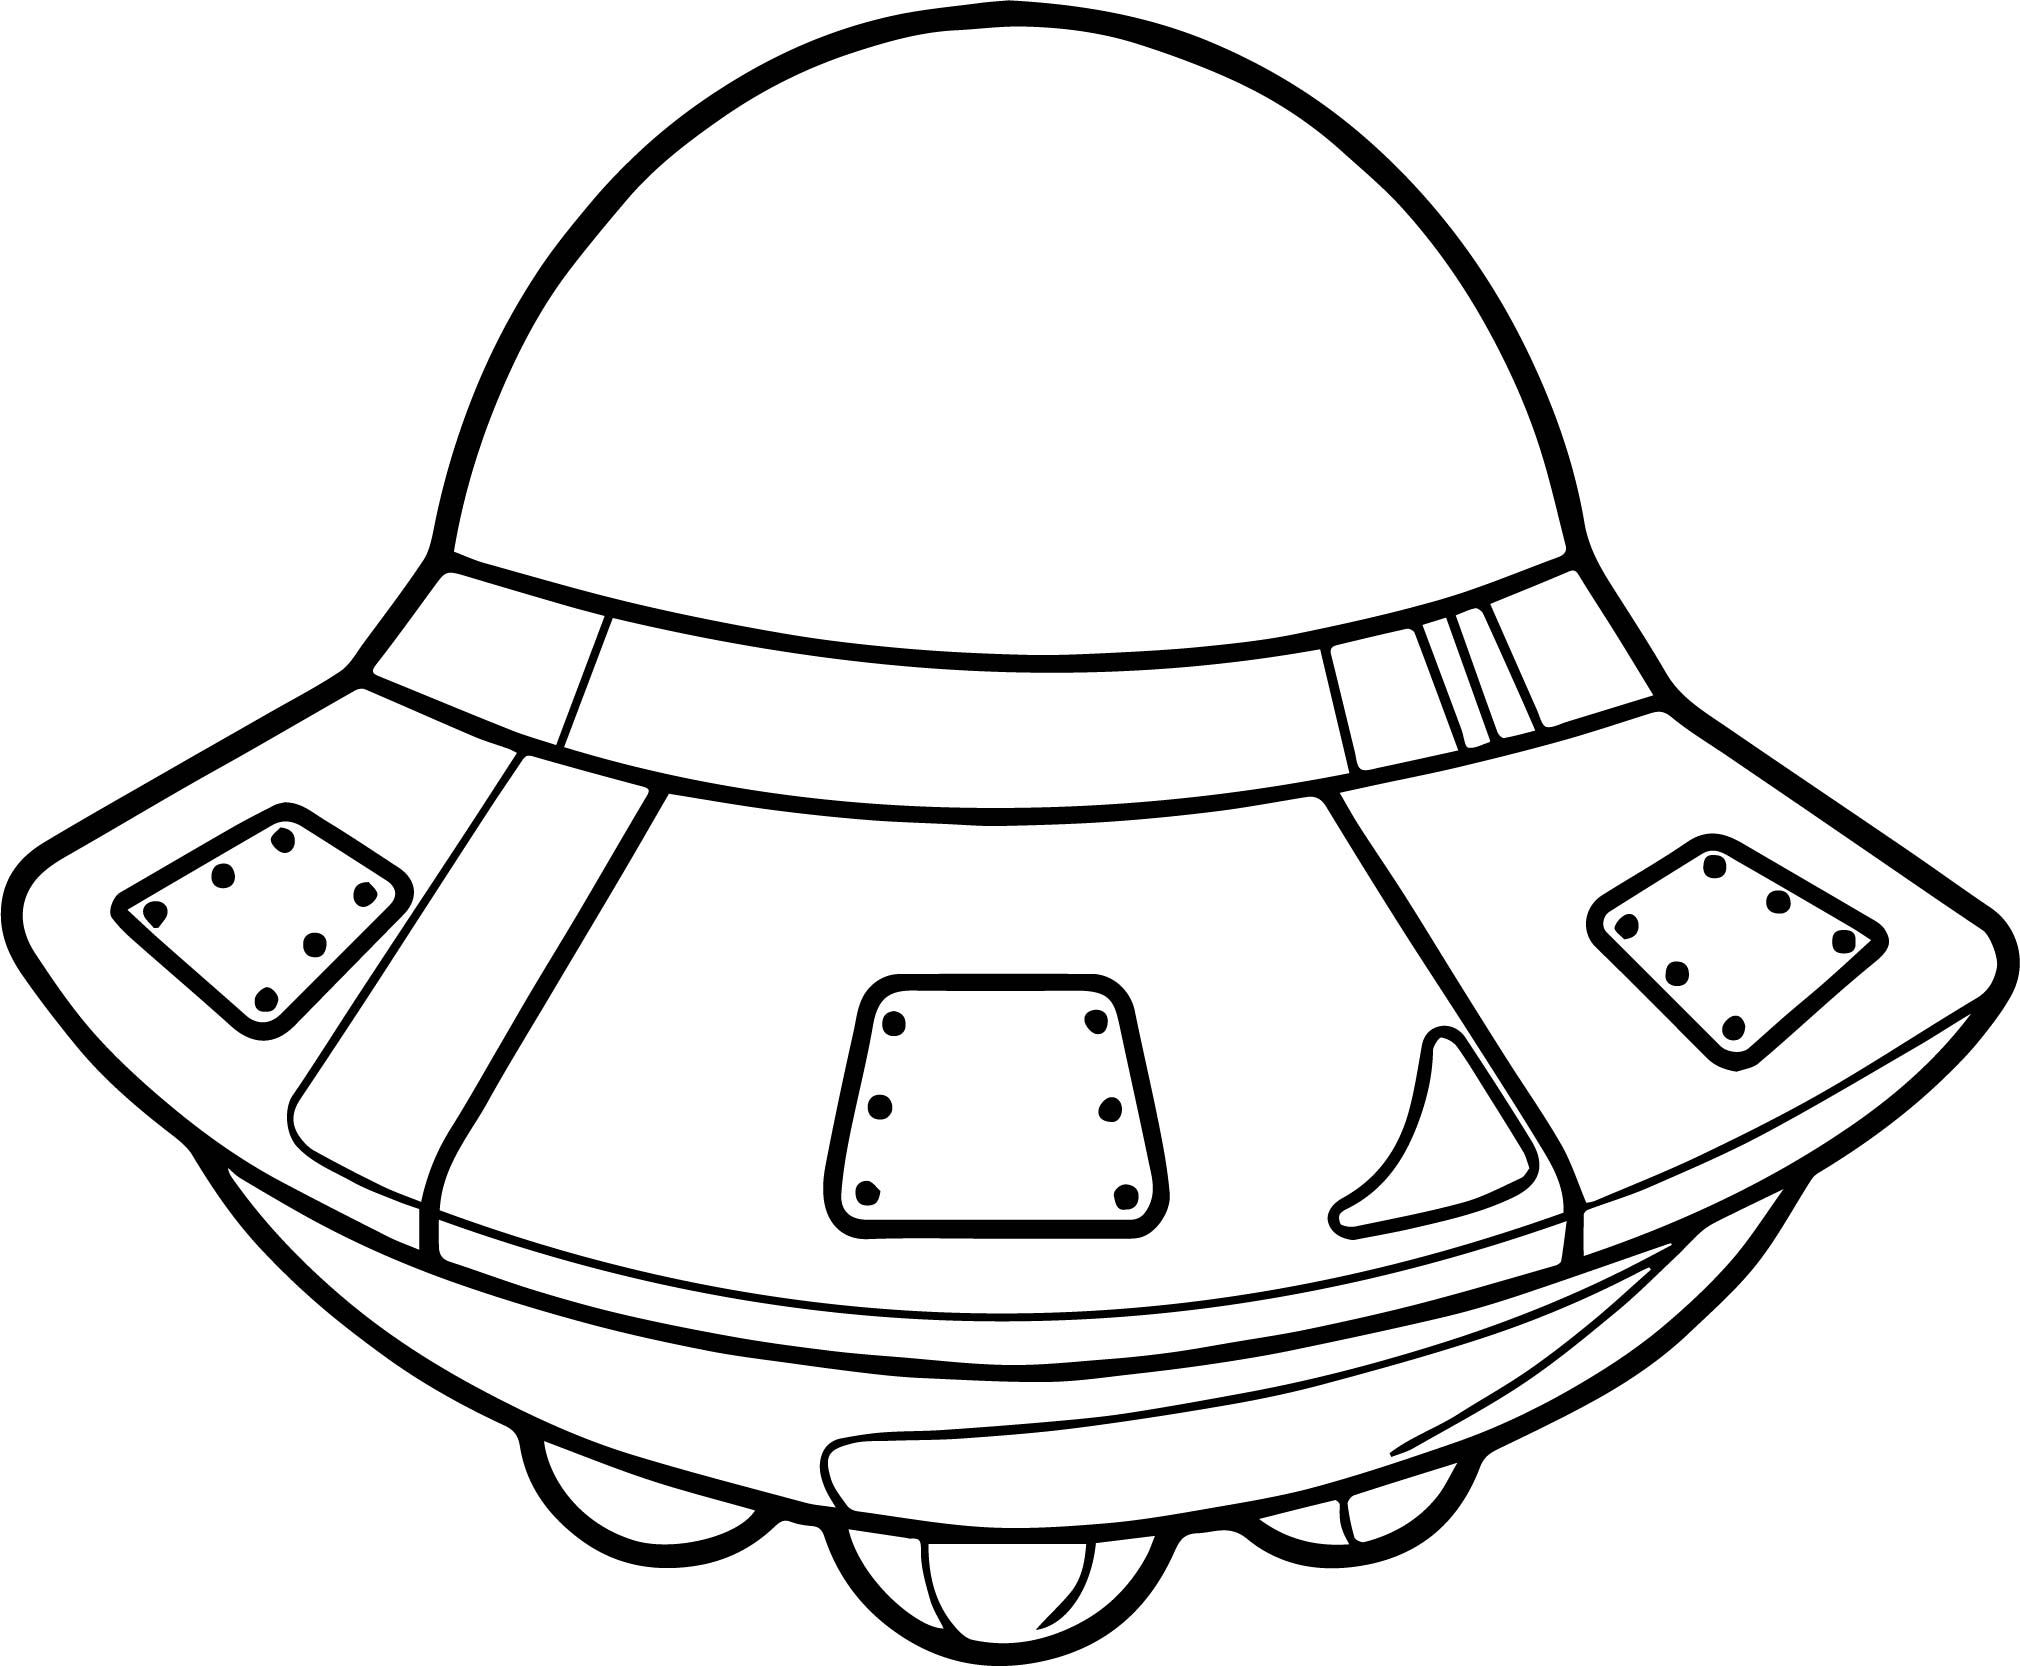 awesome Astronaut Space Vehicle Coloring Page | Coloring ...